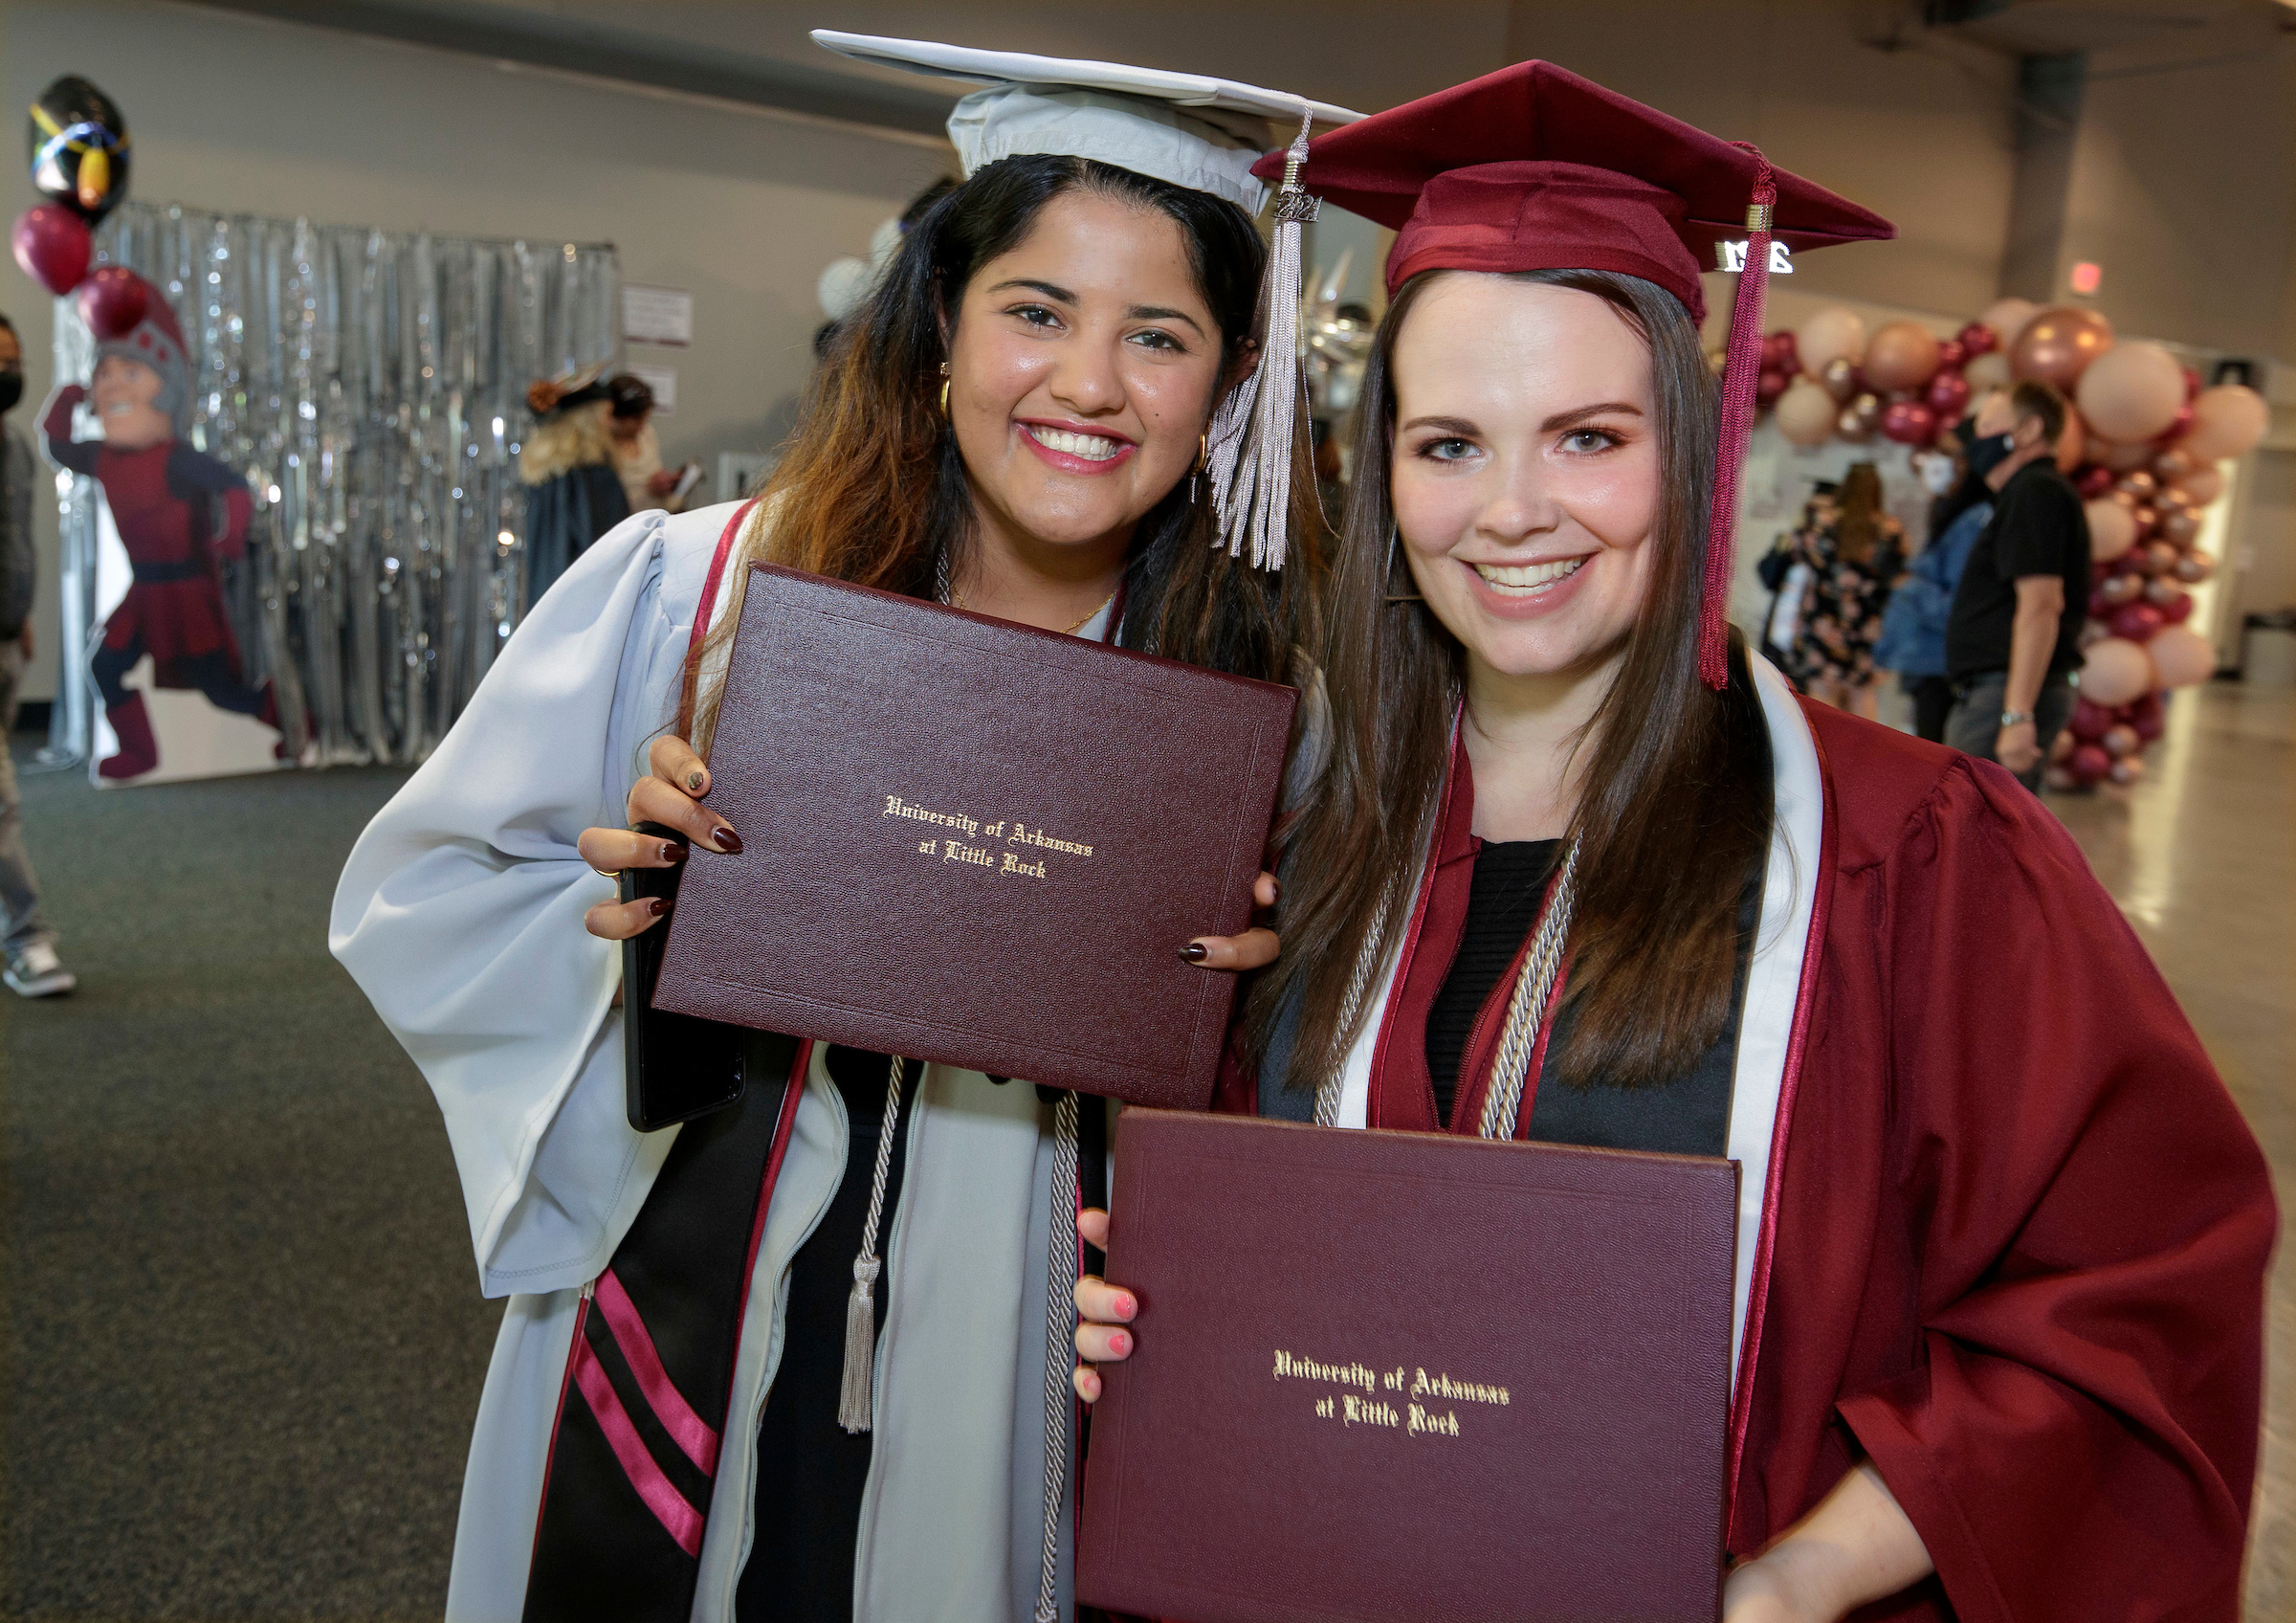 UA Little Rock graduates are honored during a 2021 Spring Hybrid Commencement Ceremony. Photo by Ben Krain.